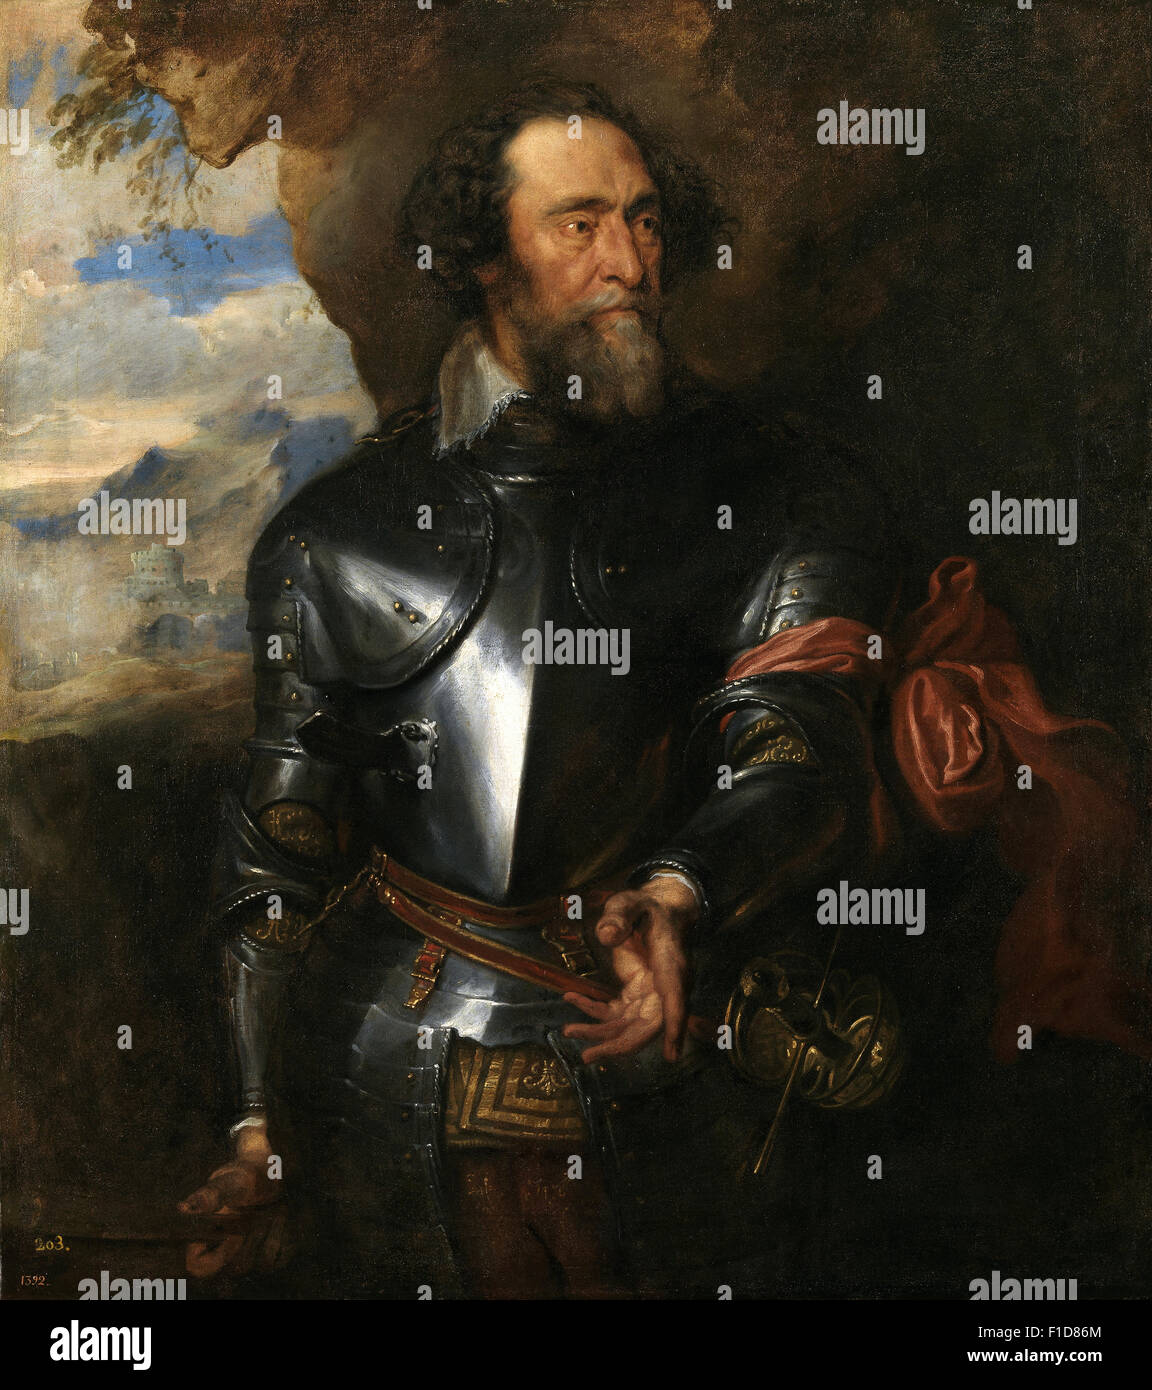 Anthony Van Dyck - Count Enrique de Bergh - Stock Image